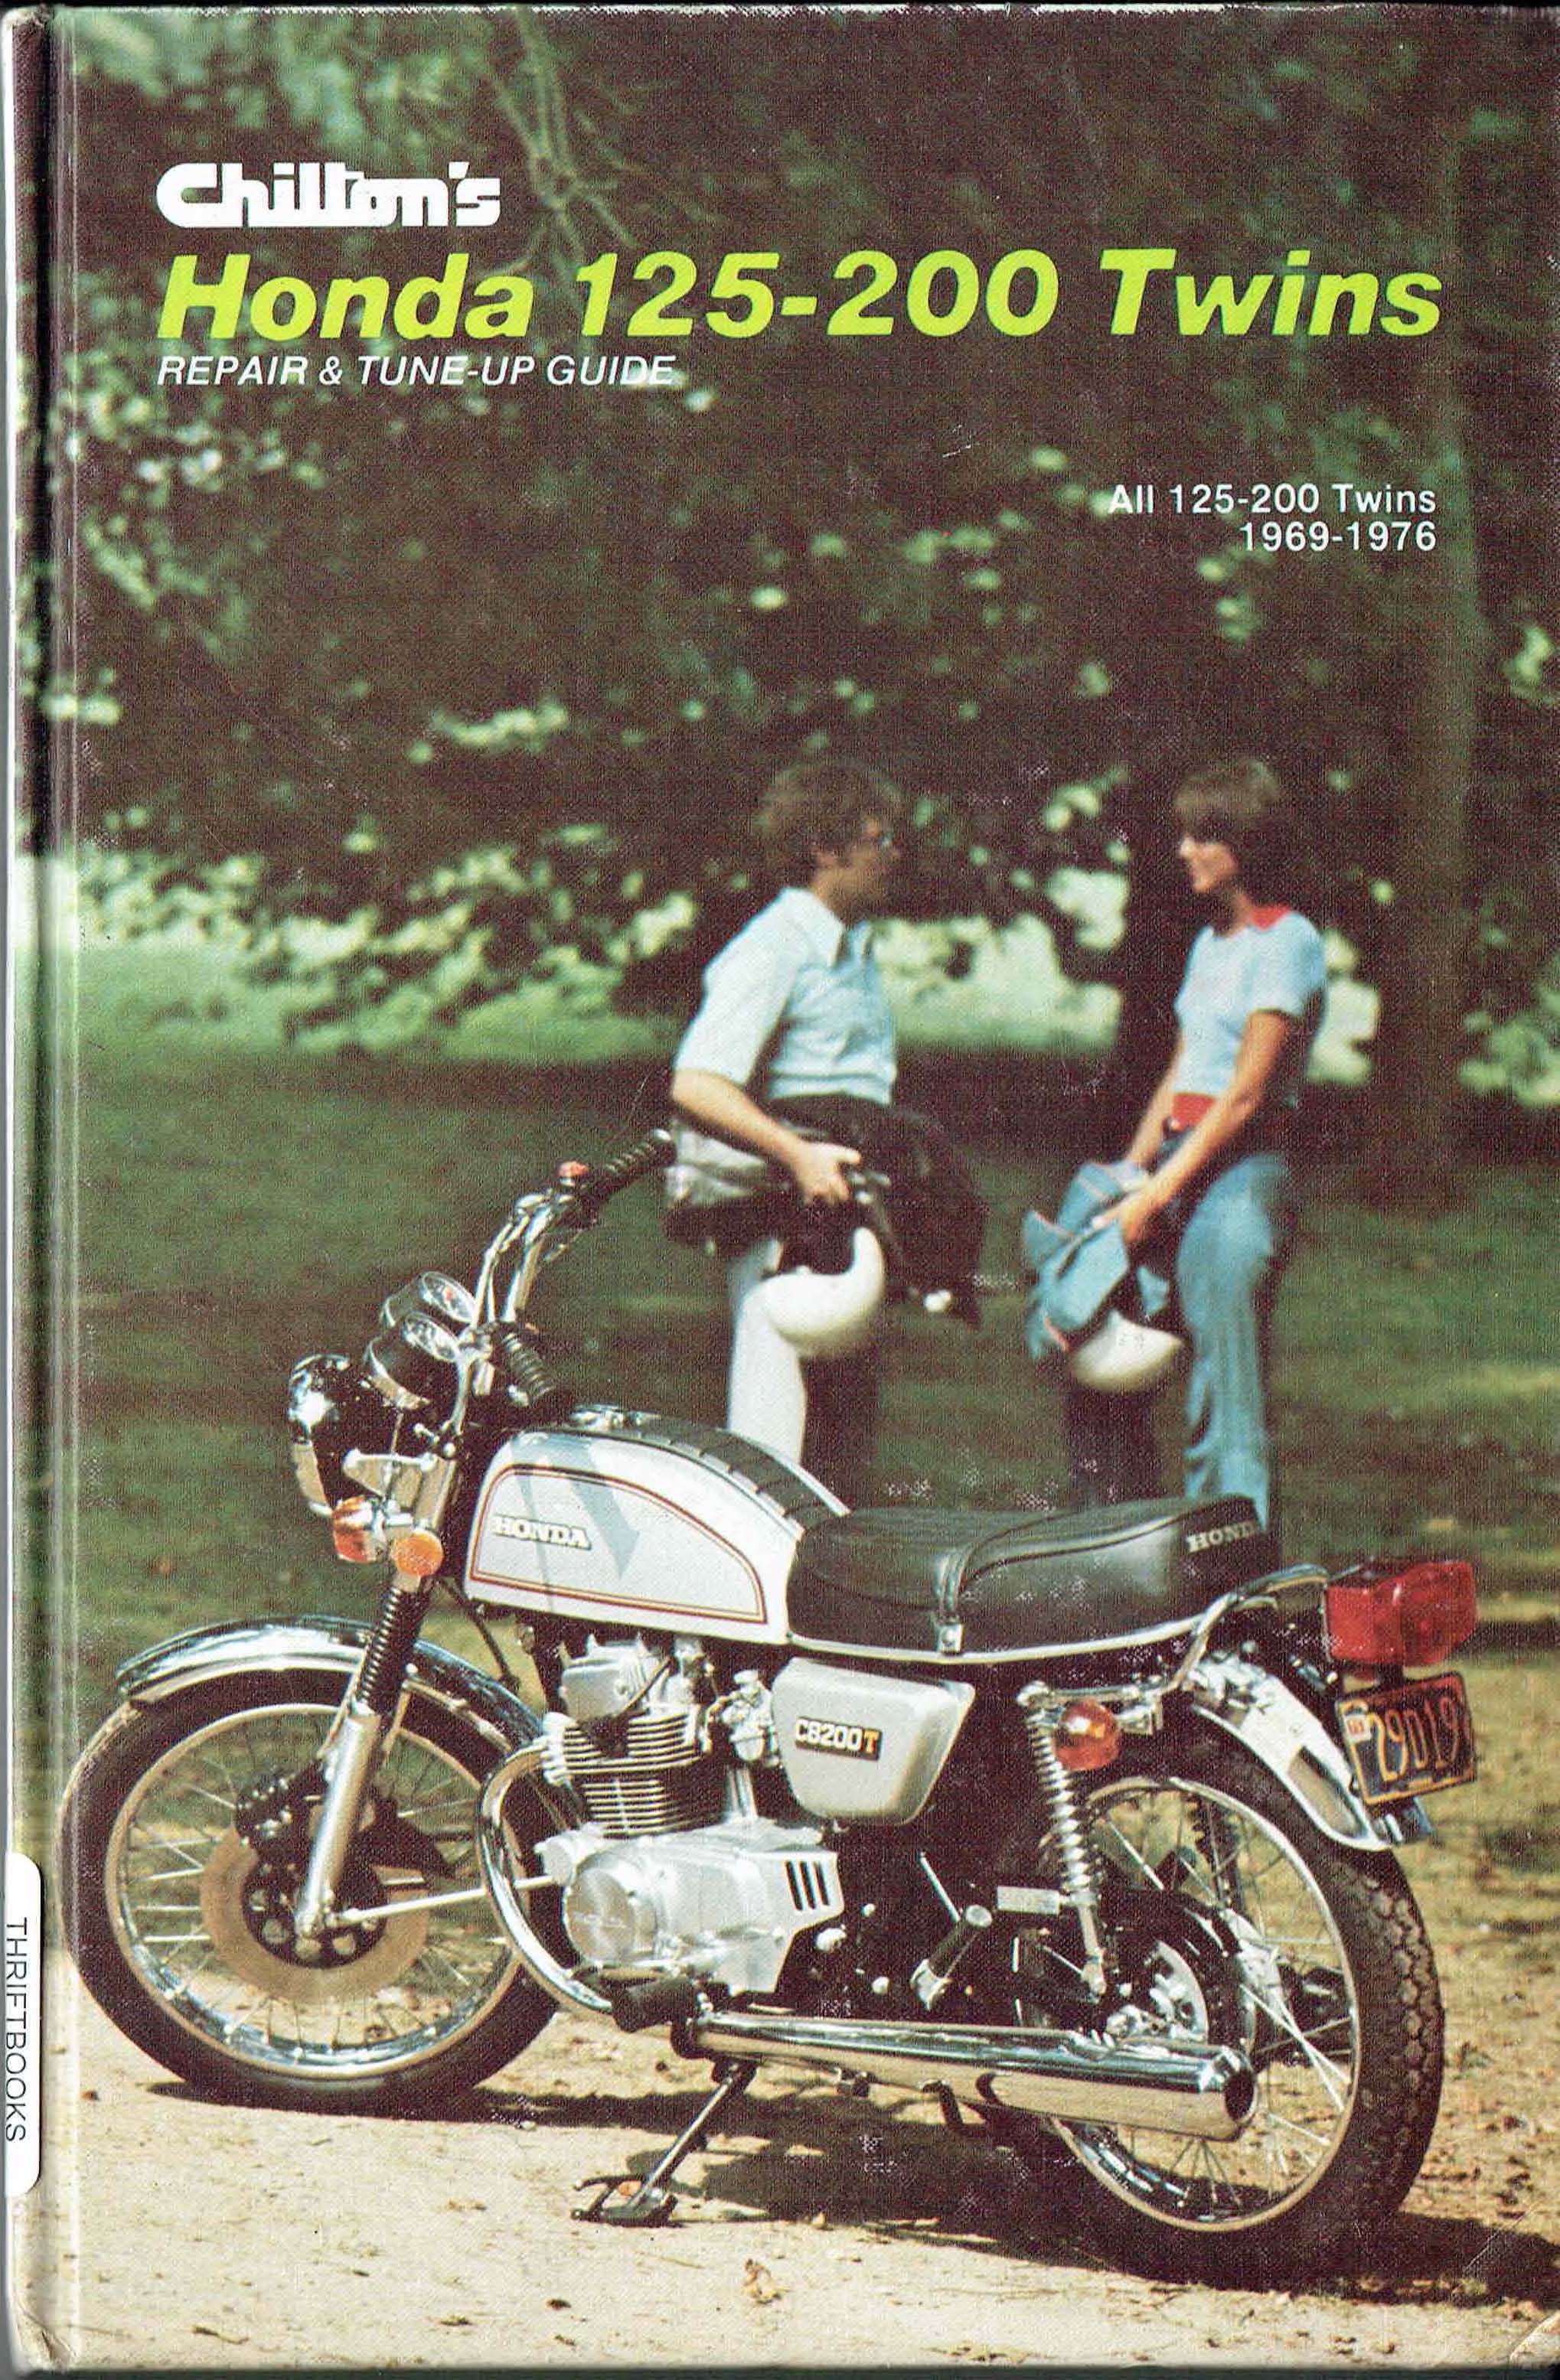 Books Brochures And Misc All The Data For Your 1970 Honda Ct70 Chiltons 125 200 Twins Repair Tuning Guide 1975